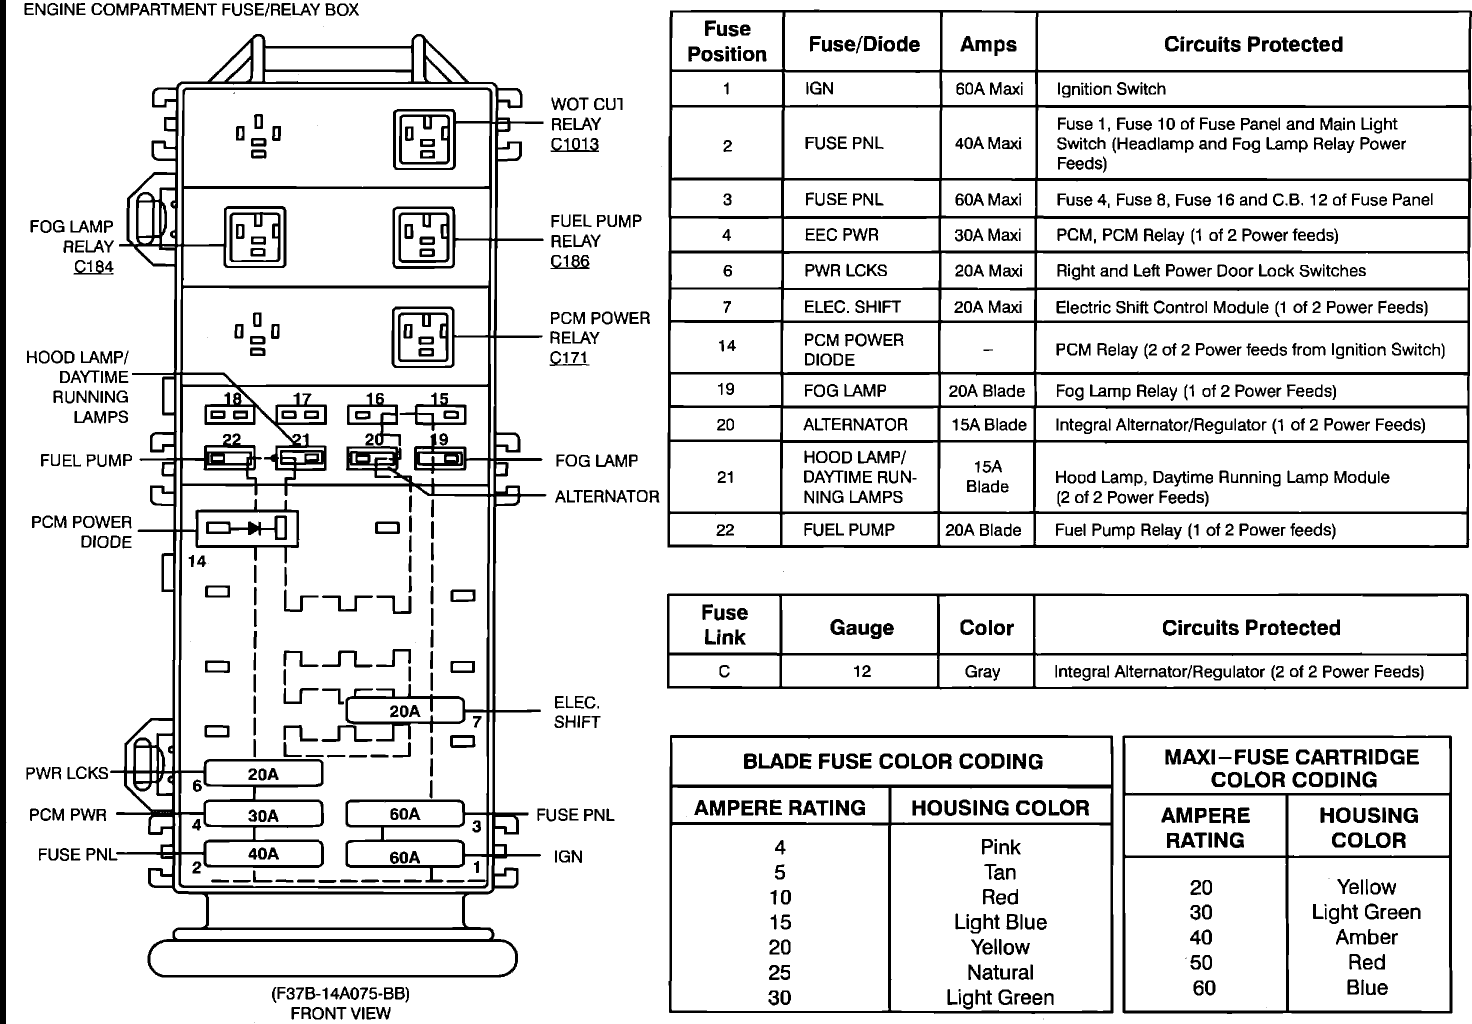 hight resolution of 1993 ford f350 fuse diagram wiring diagram online f350 super duty fuse diagram 93 explorer fuse